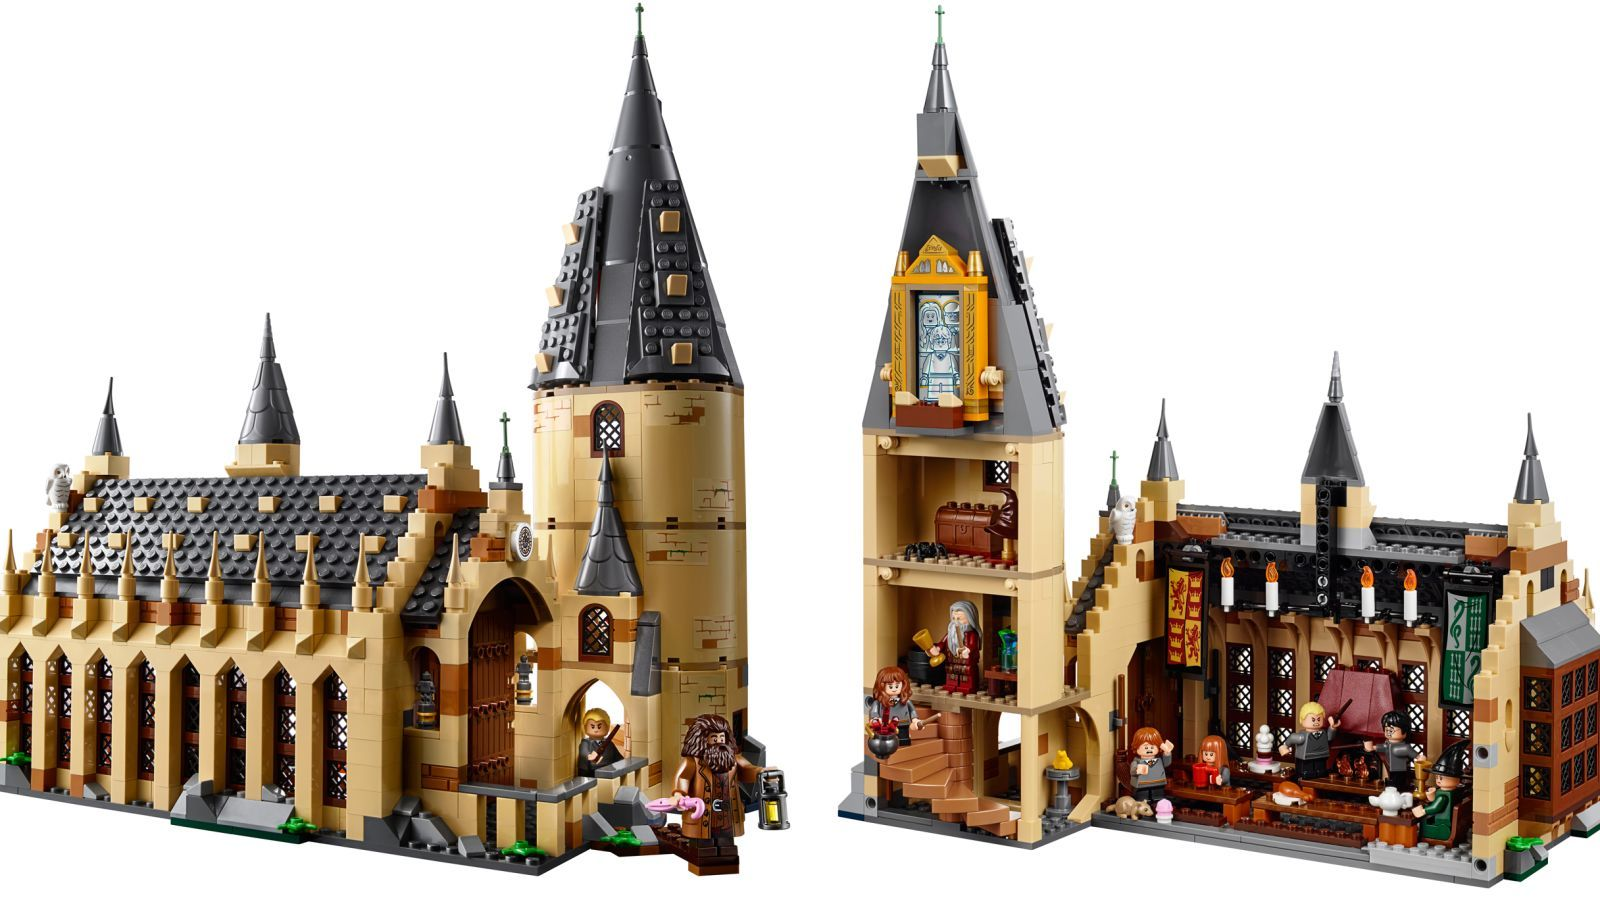 Lego S New Hogwarts Great Hall Set Is Going To Magically Drain My Wallet Harry Potter Lego Sets Lego Harry Potter Best Lego Sets